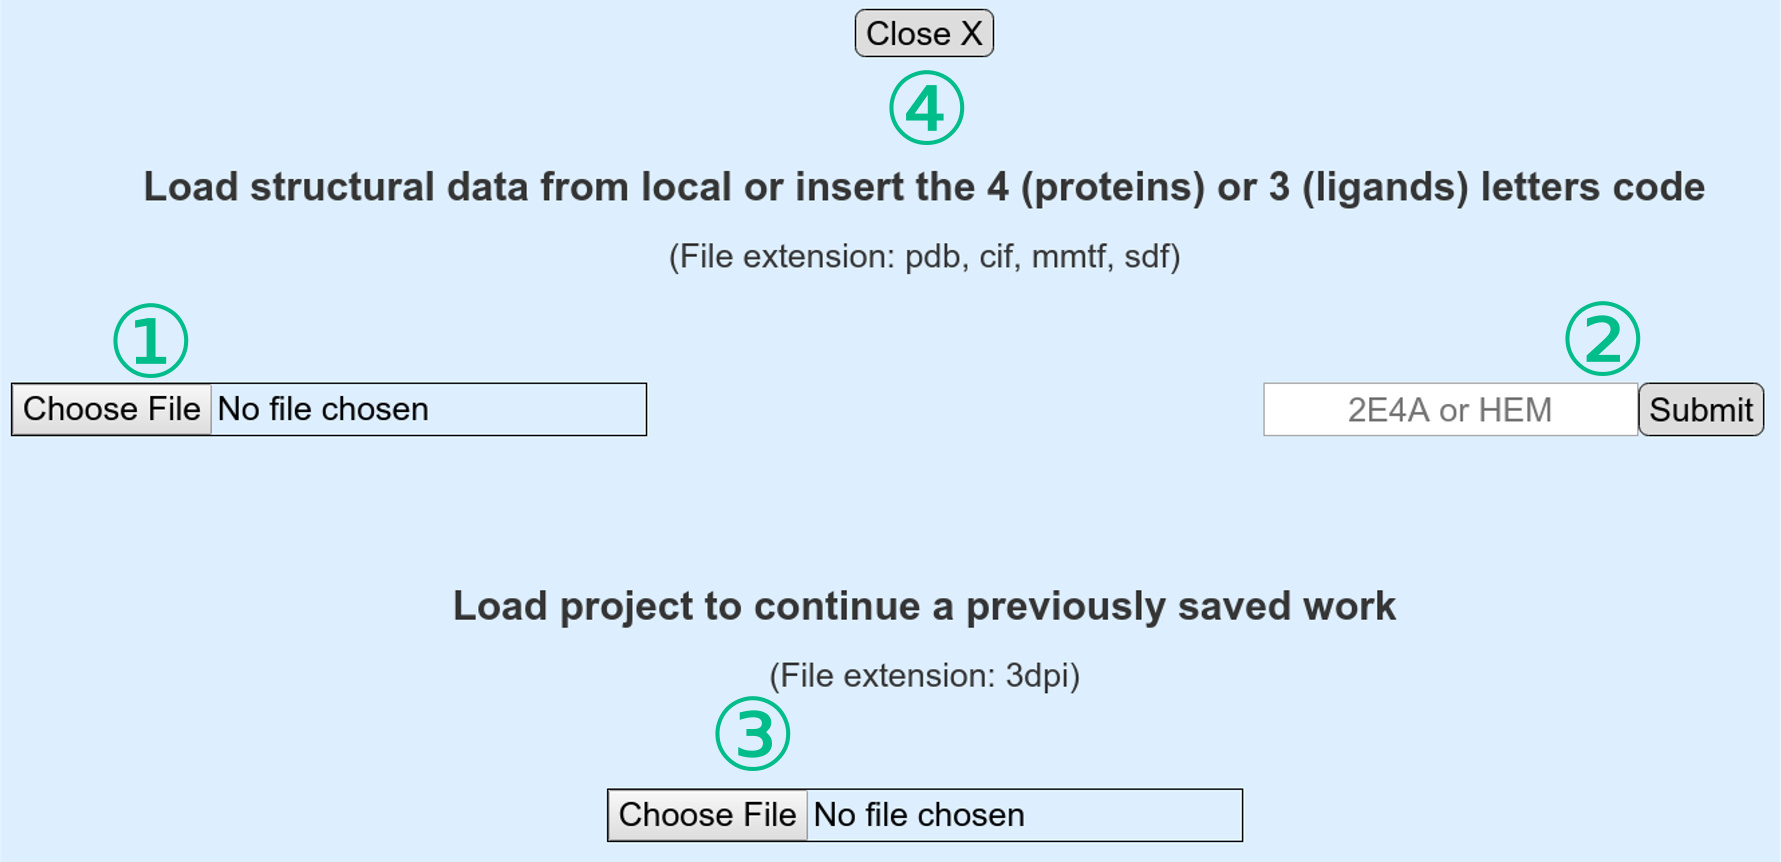 Starting panel from which to choose the file loading method.